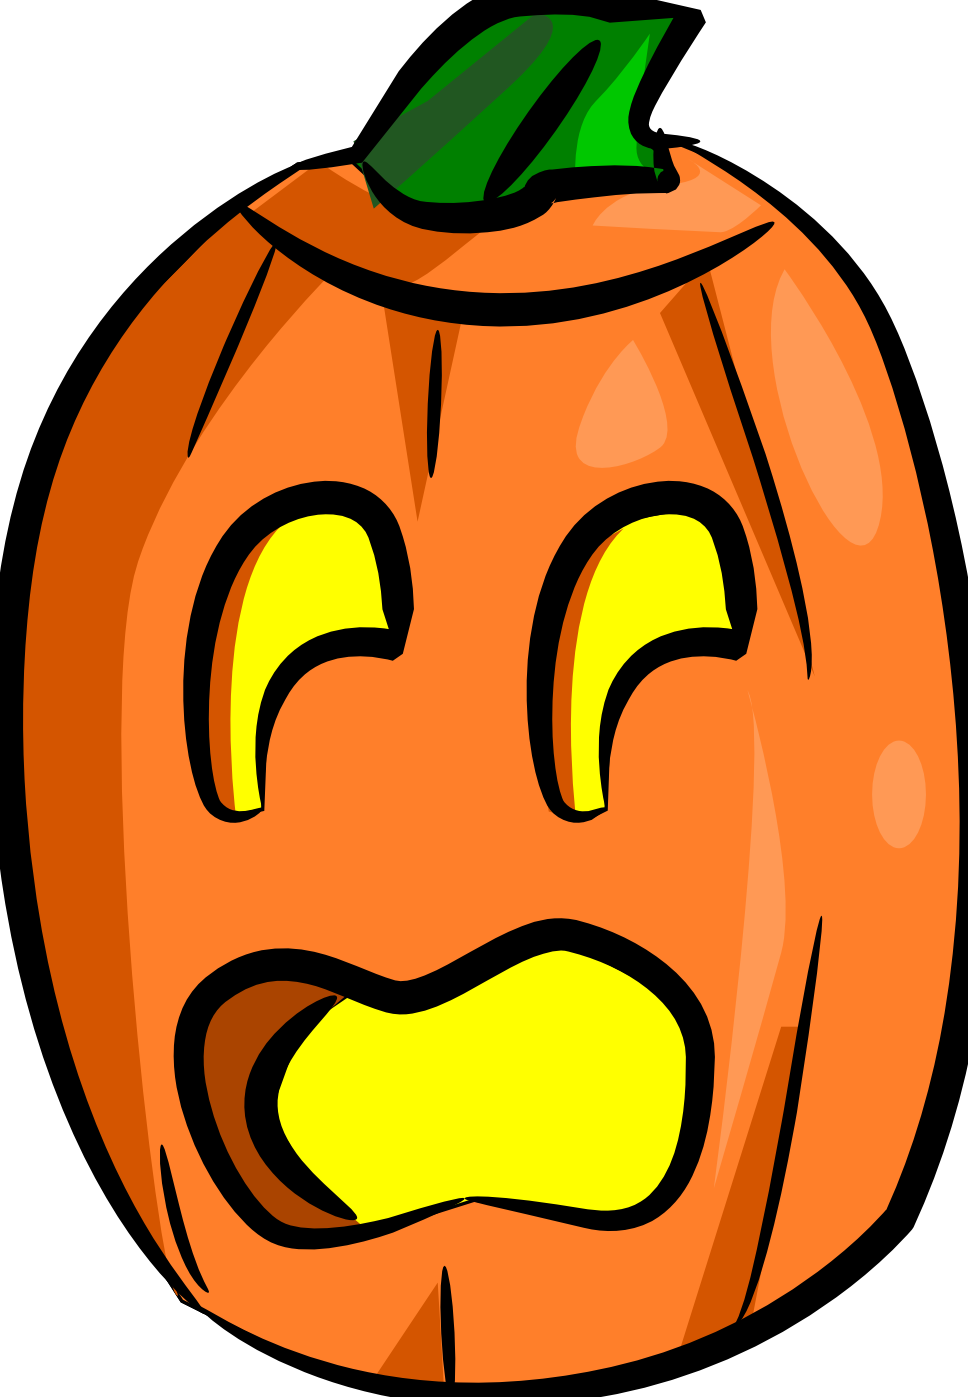 Surprised clipart jack o lantern. Totally free clip art